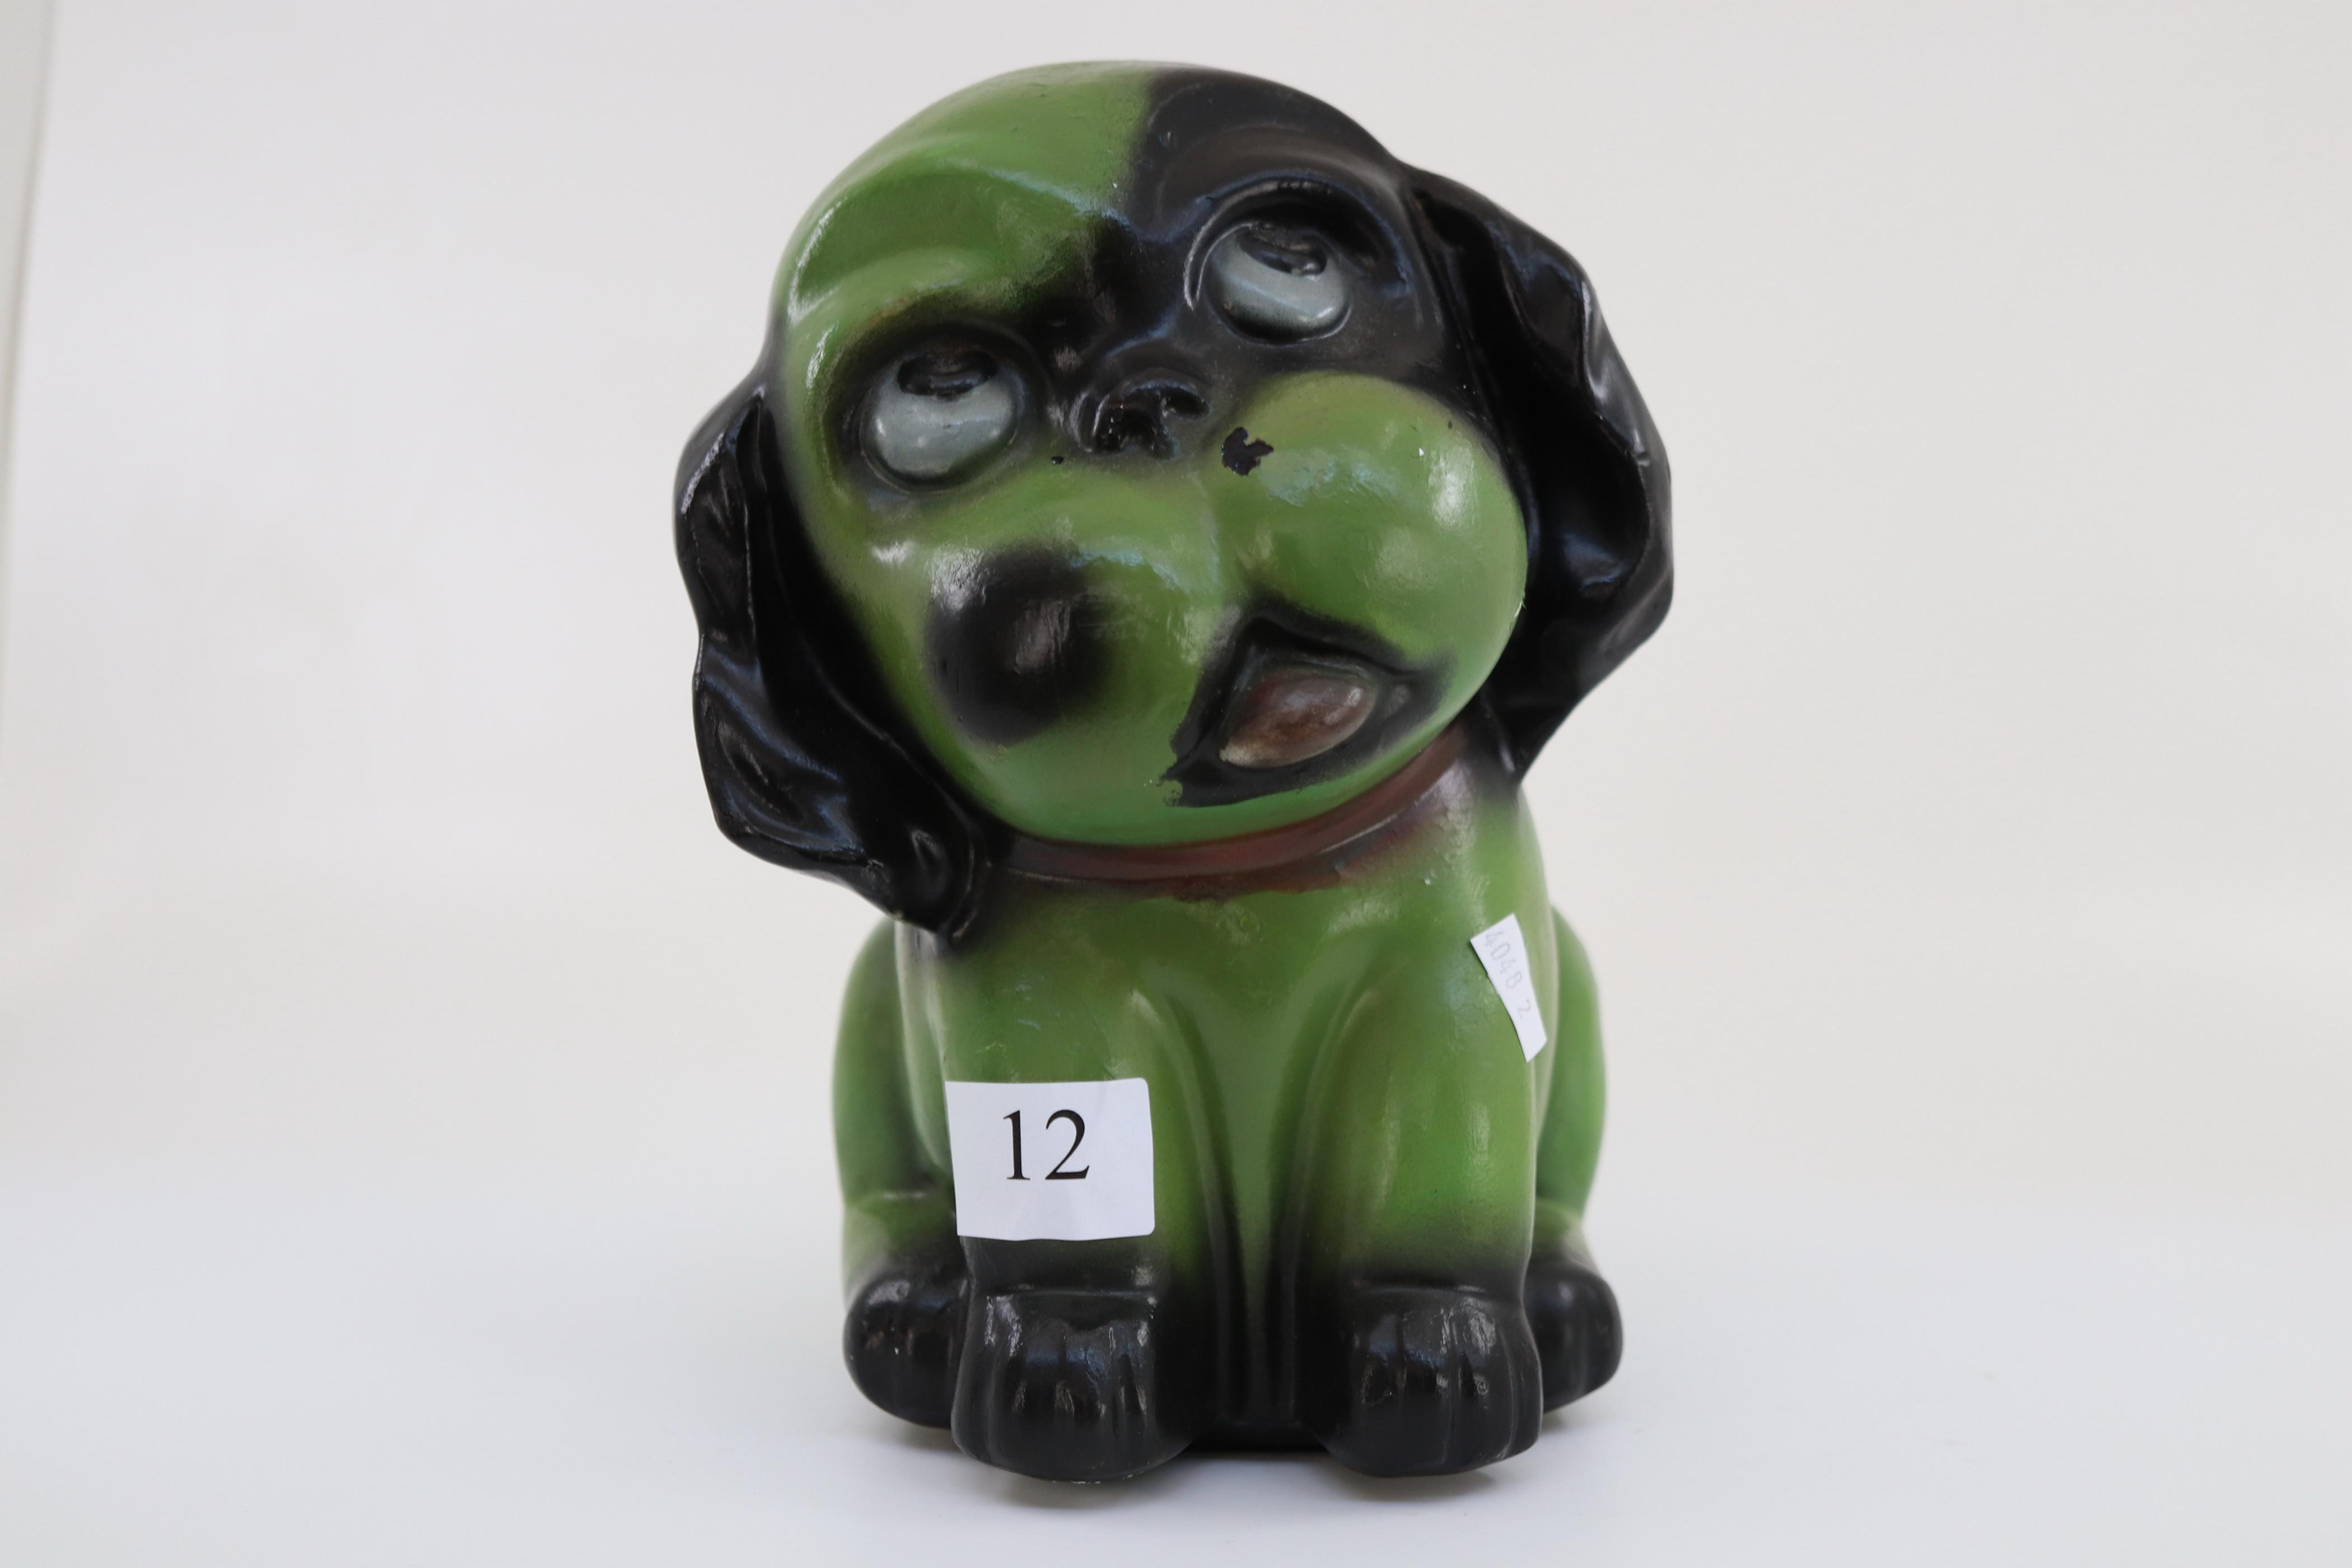 LARGE ADORABLE BONZO CERAMIC DOG FIGURE INCISE NUMBER 336 ( APPROX 24 CM TALL X16CM WIDE C18CM DEEP)